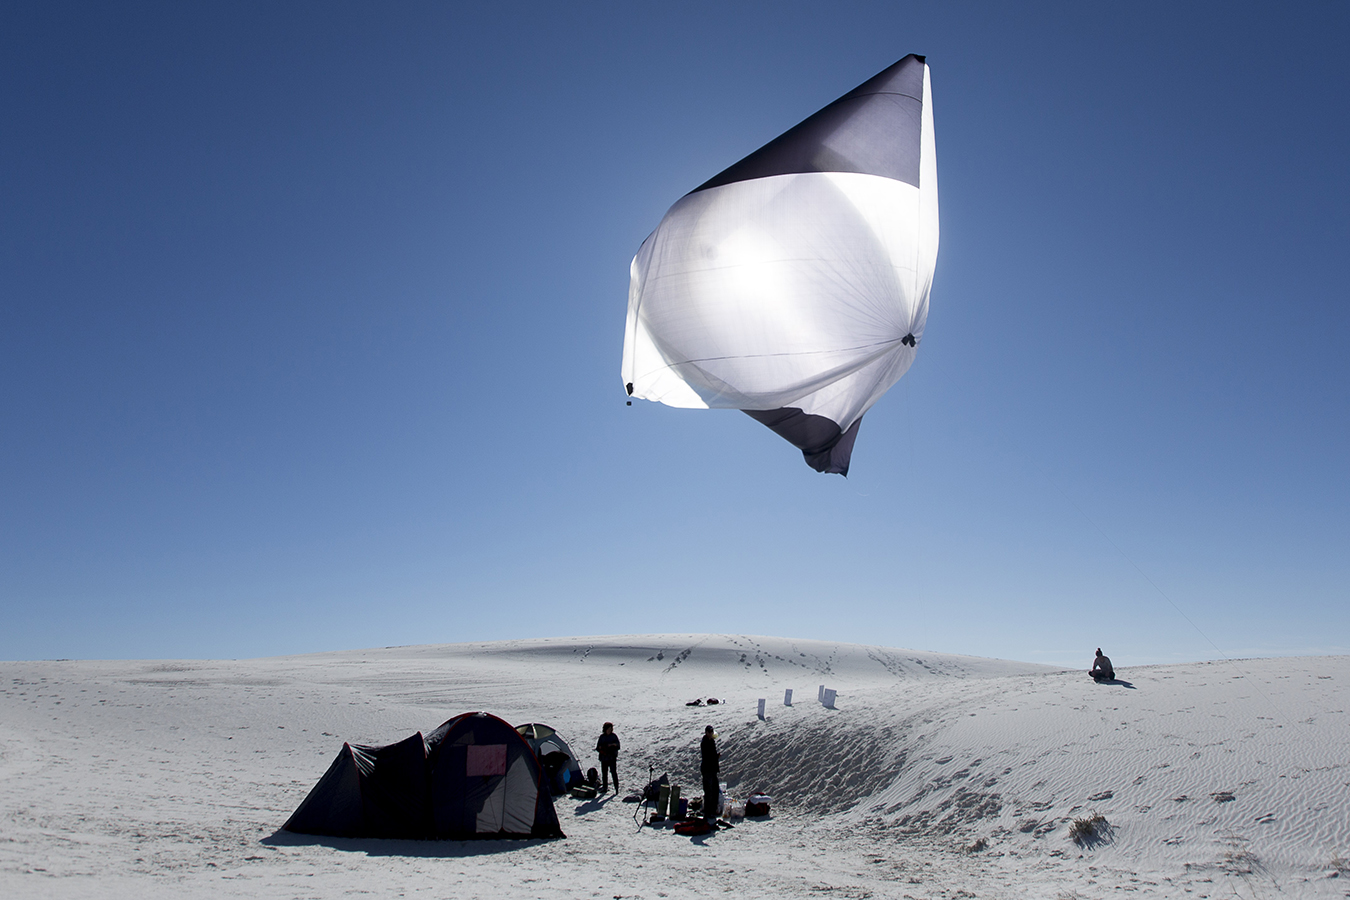 Tomás Saraceno, Aerocene, launches at White Sands Natural Park, 2015.